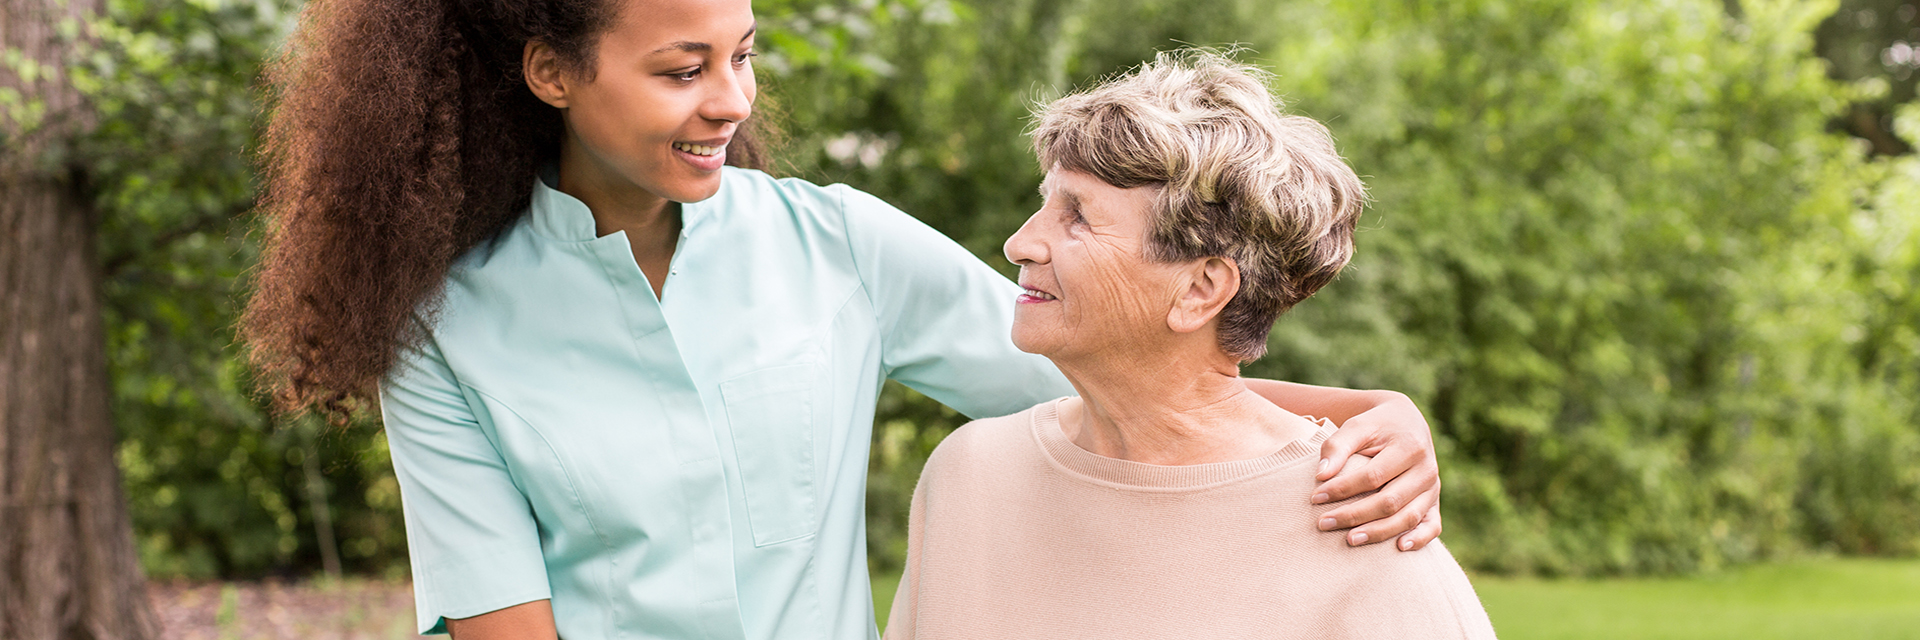 nurse outside with patient smiling at each other